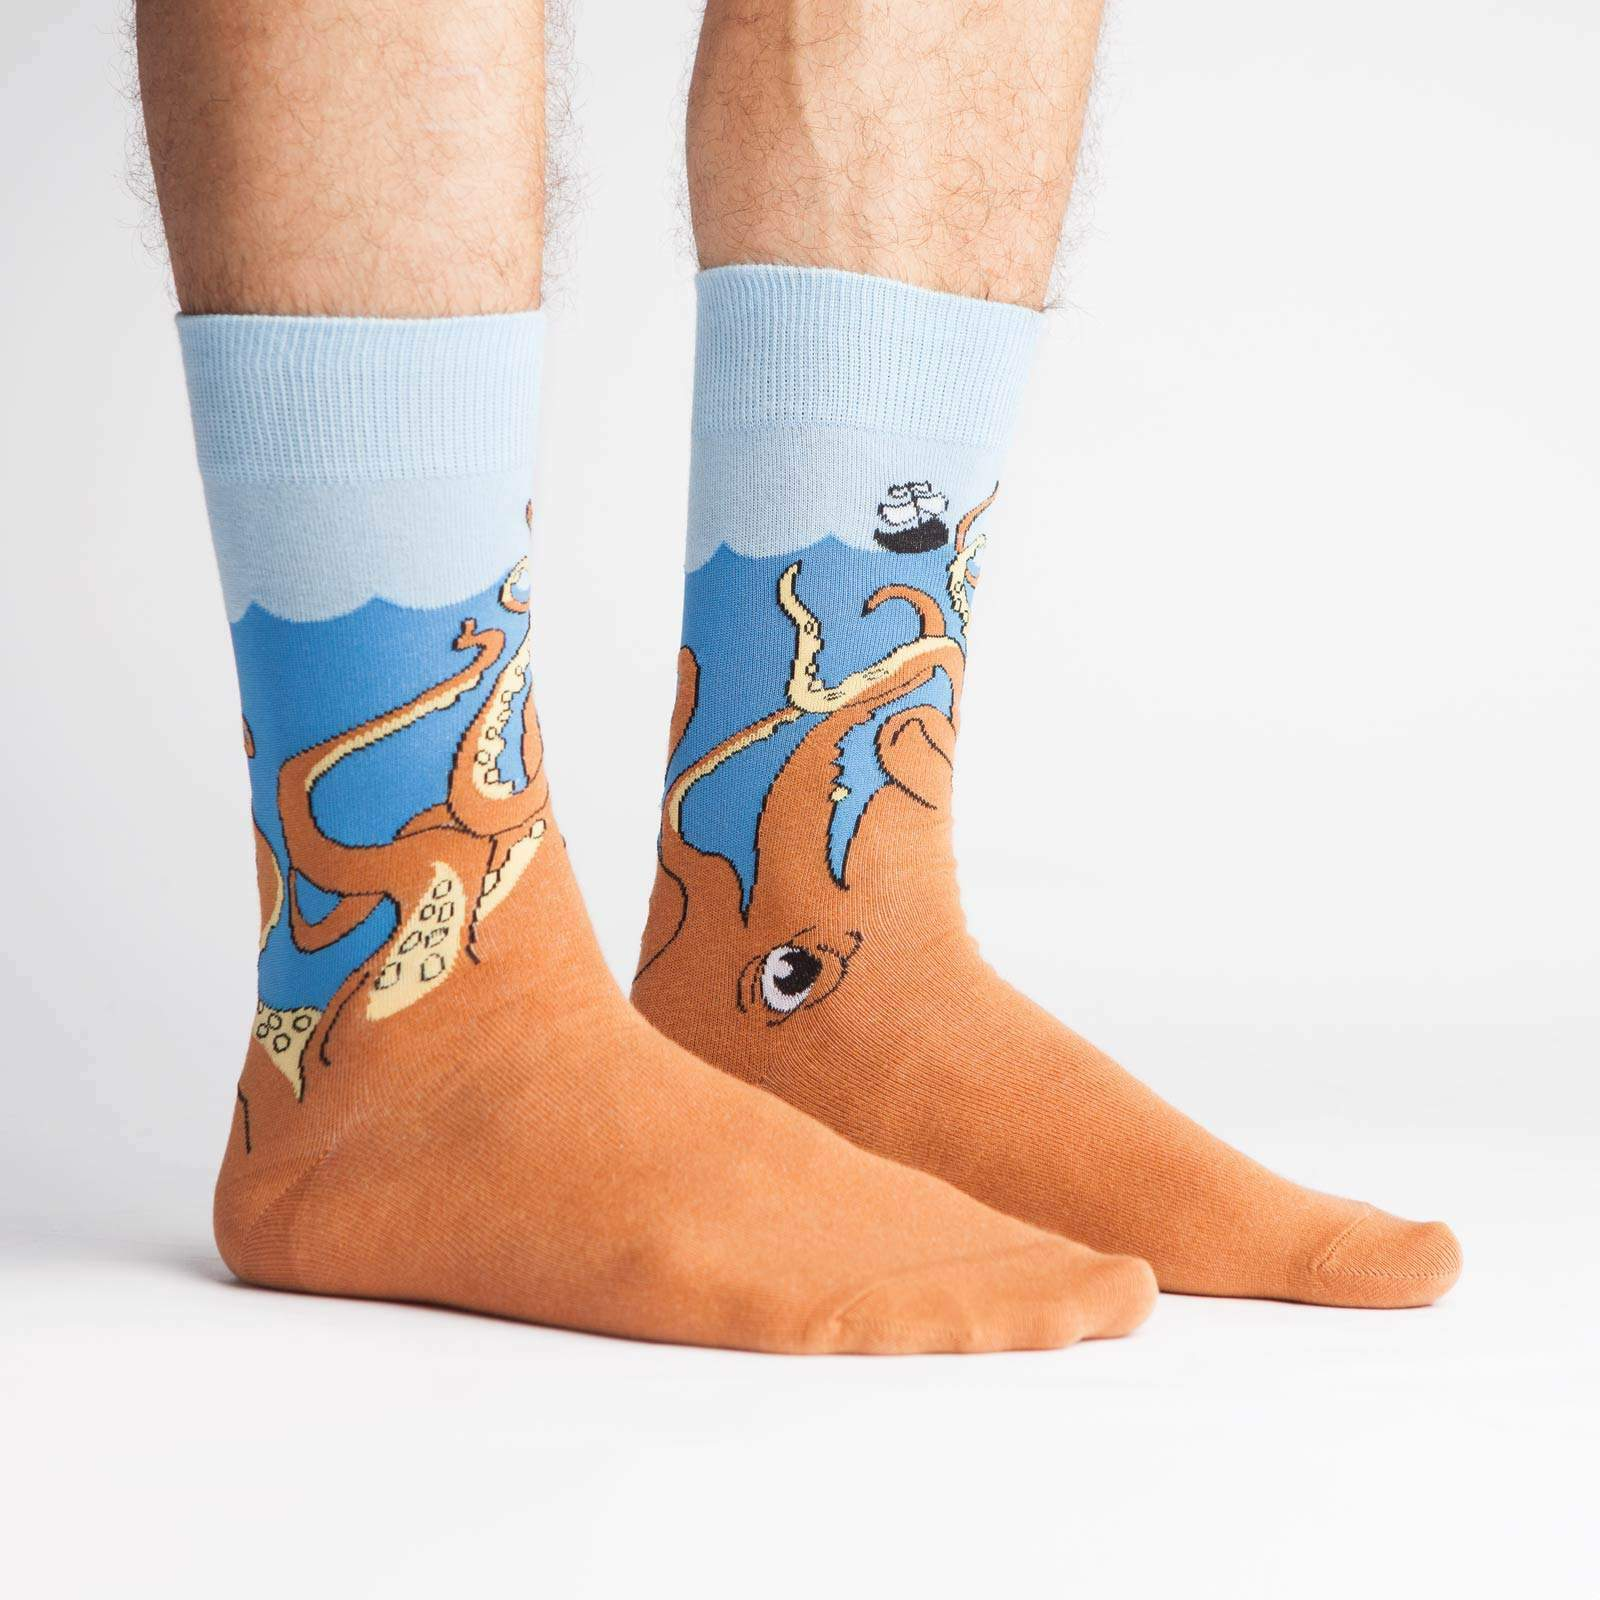 model side view of Squid-O - Squid Crew Socks Blue and Orange - Men's